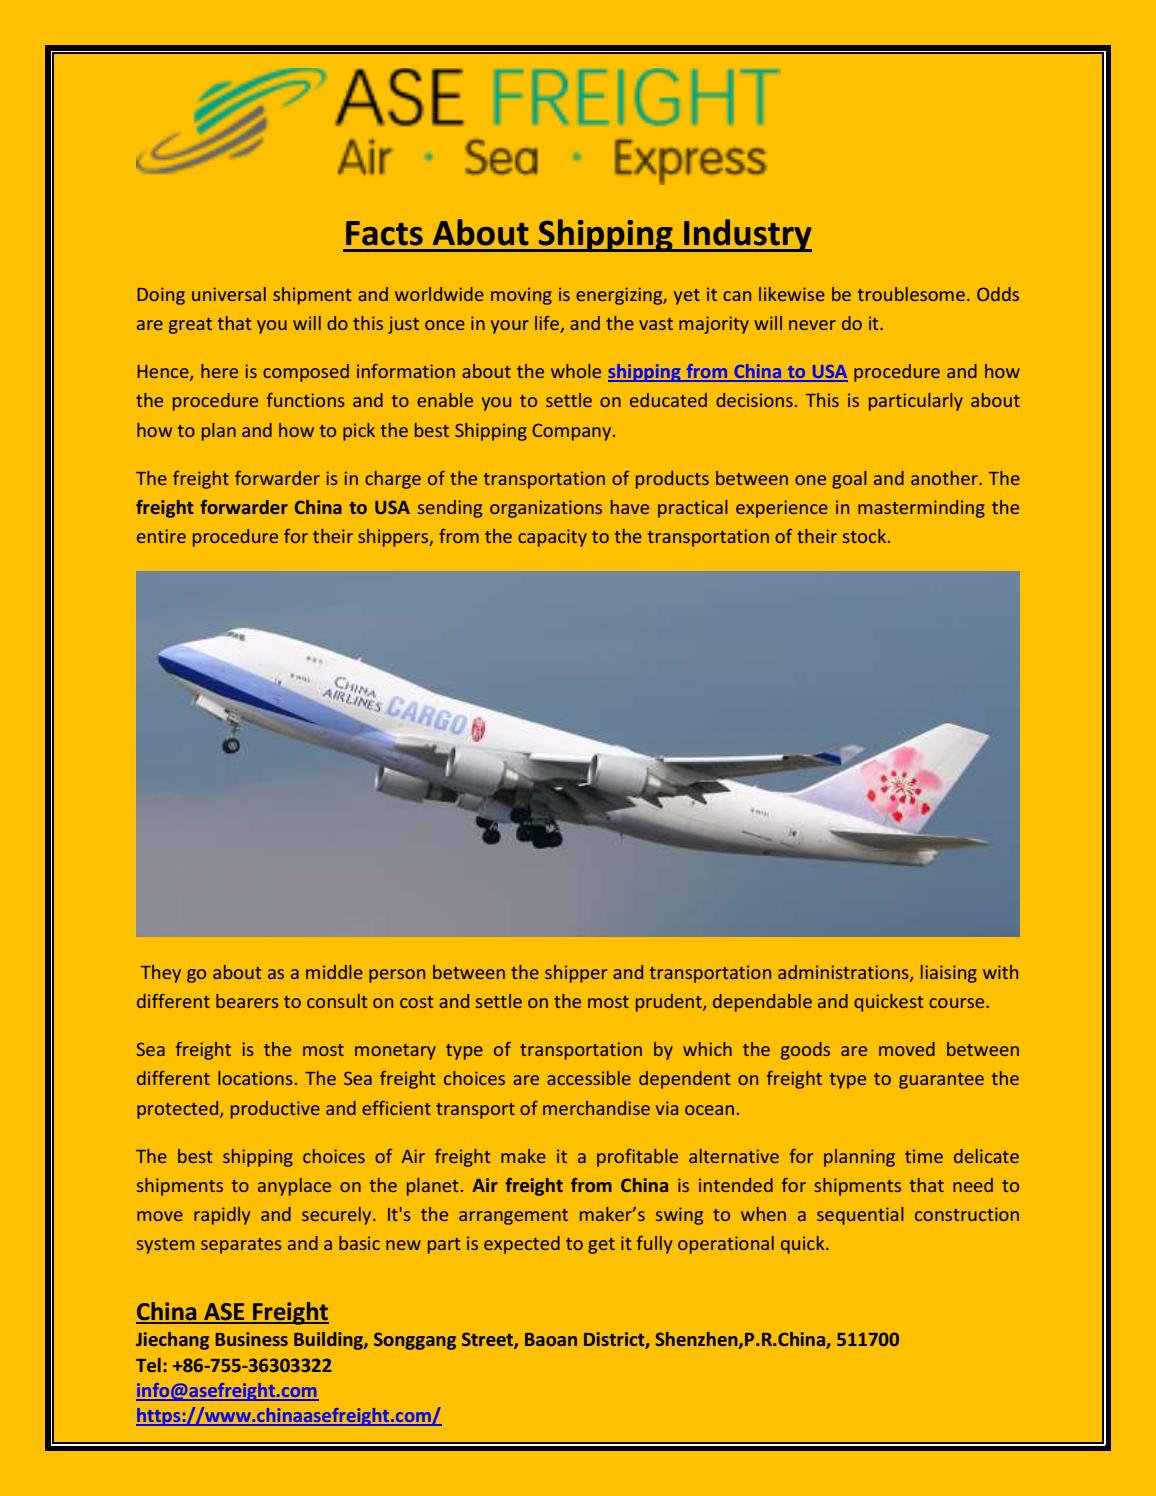 Facts About Shipping Industry by ASE Freight - issuu